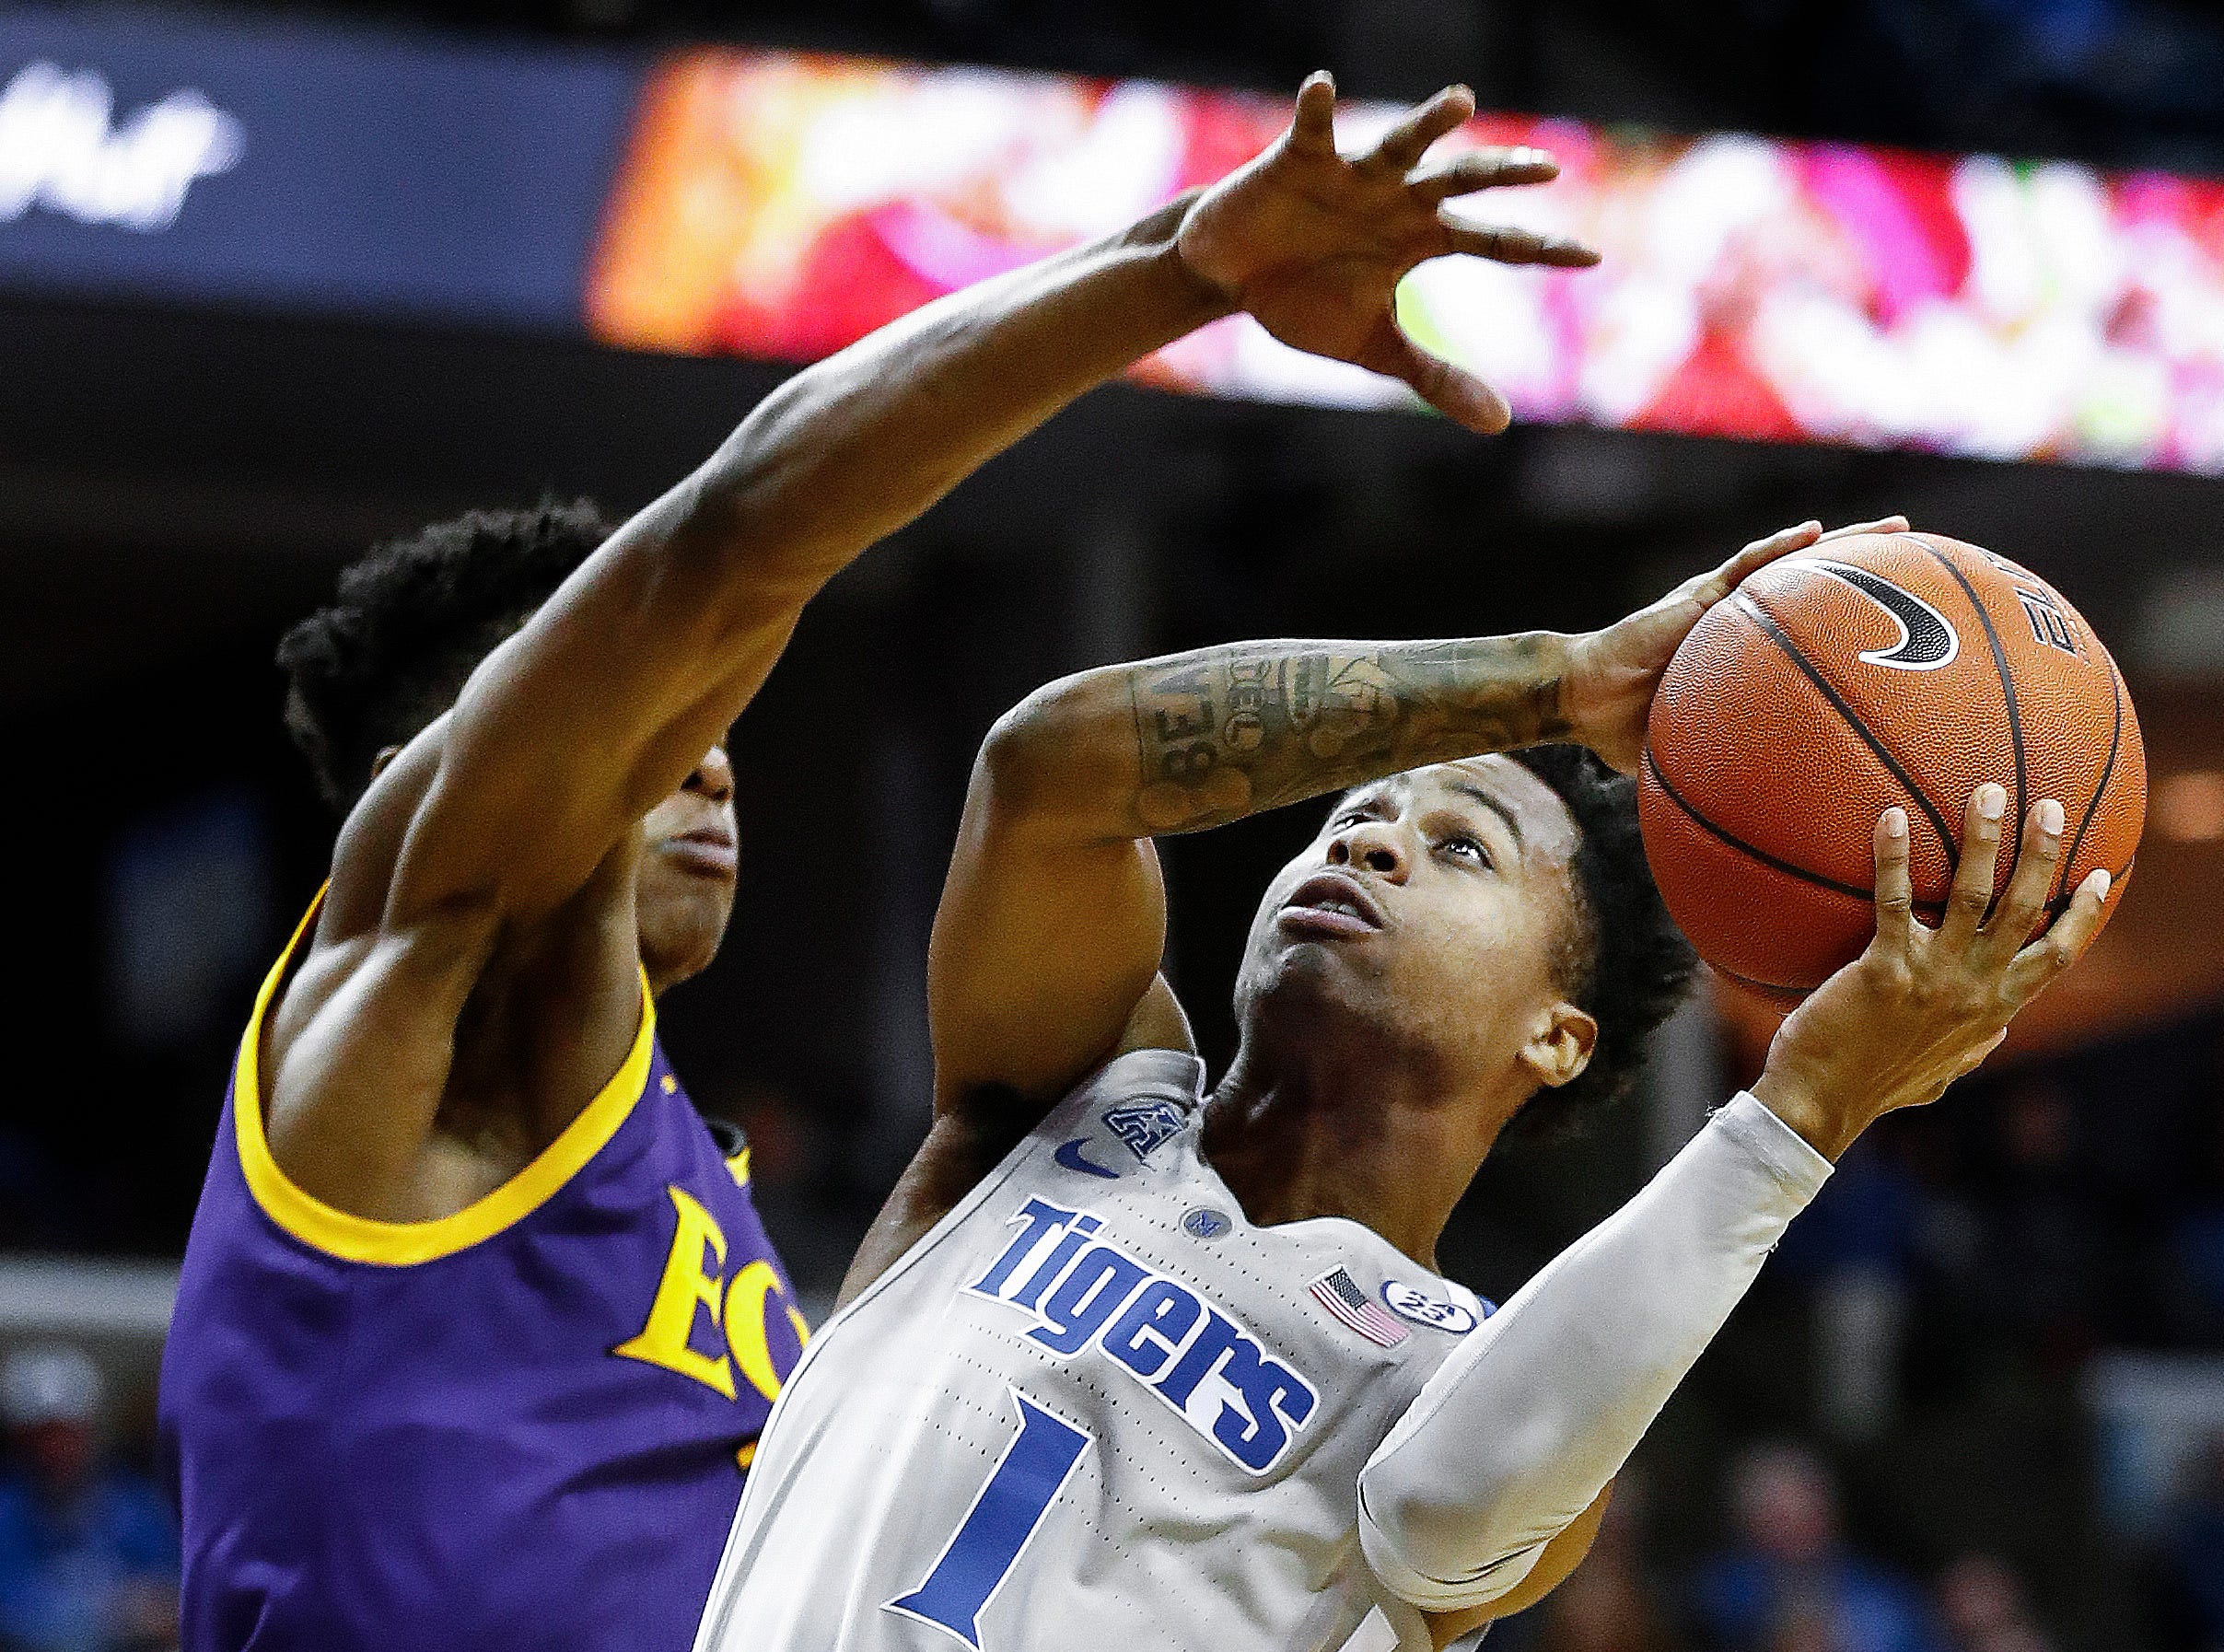 Memphis guard Tyler Harris (right) drives to the basket against the ECU defense during action at the FedExForum, Thursday, January 10, 2019.